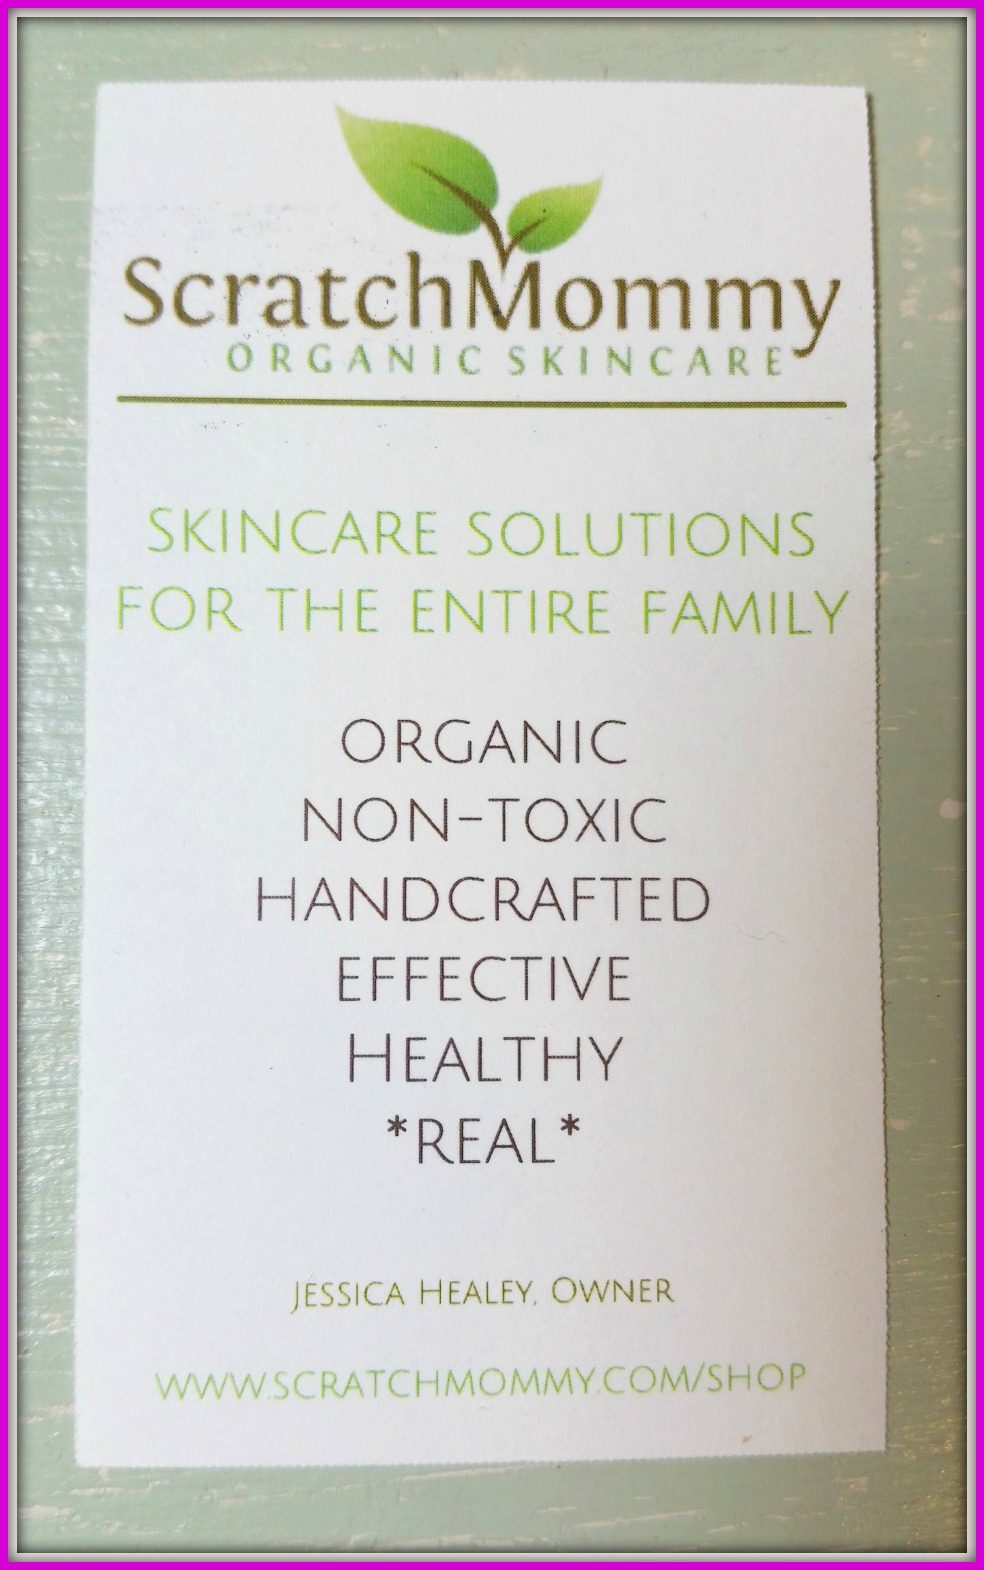 ScratchMommy Skincare Review (By WhippedGreenGirl.com